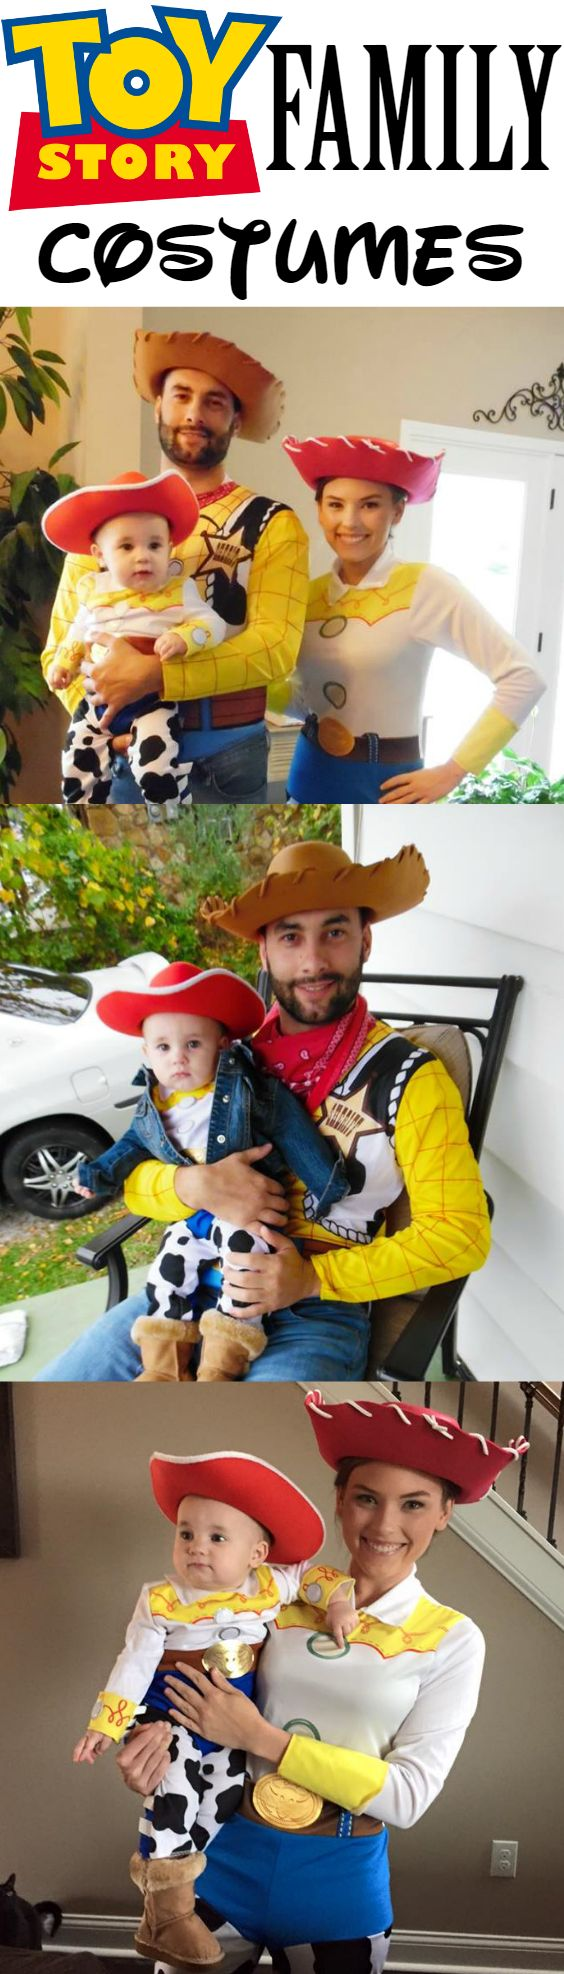 Best 25+ Toy story halloween costumes diy ideas on Pinterest | Toy ...